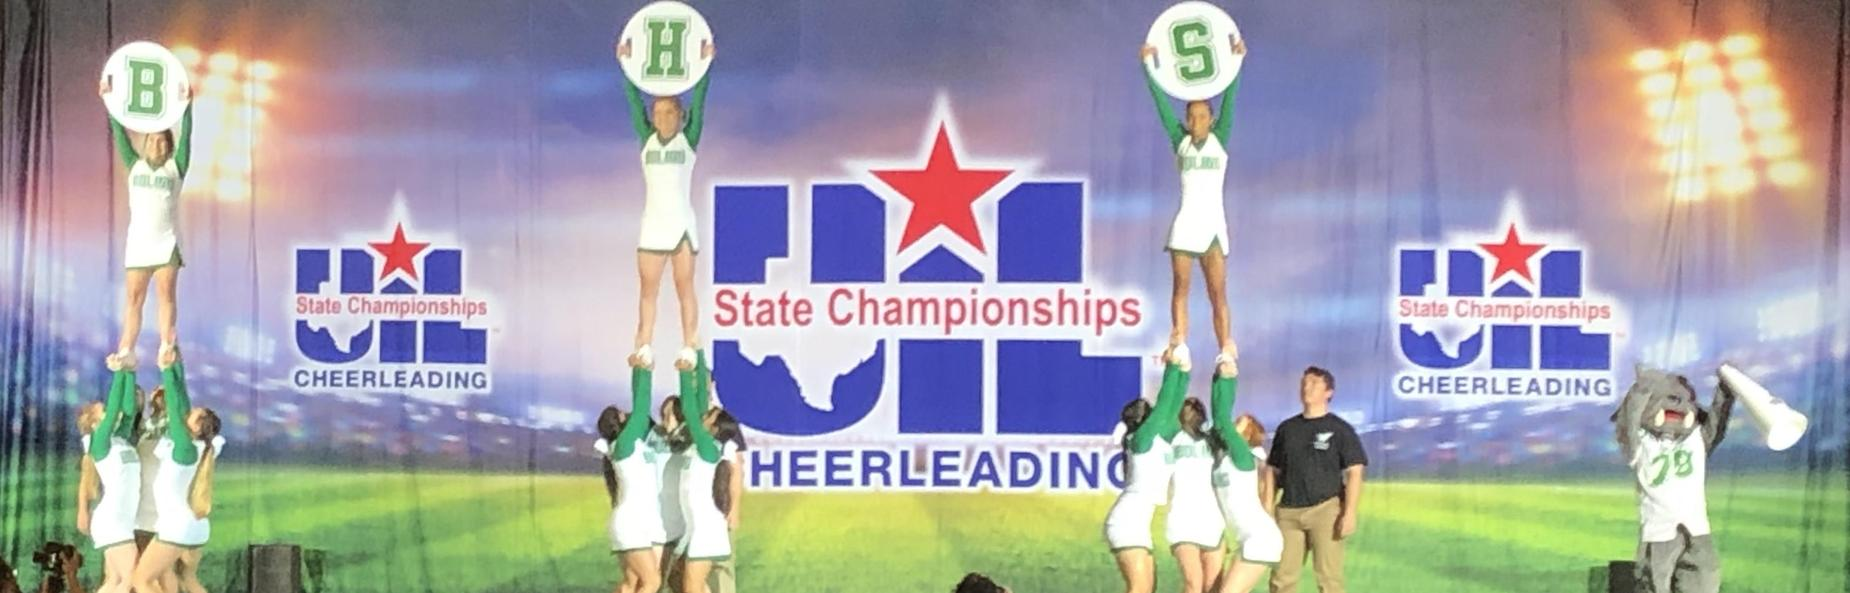 high school cheerleaders at state championship competition